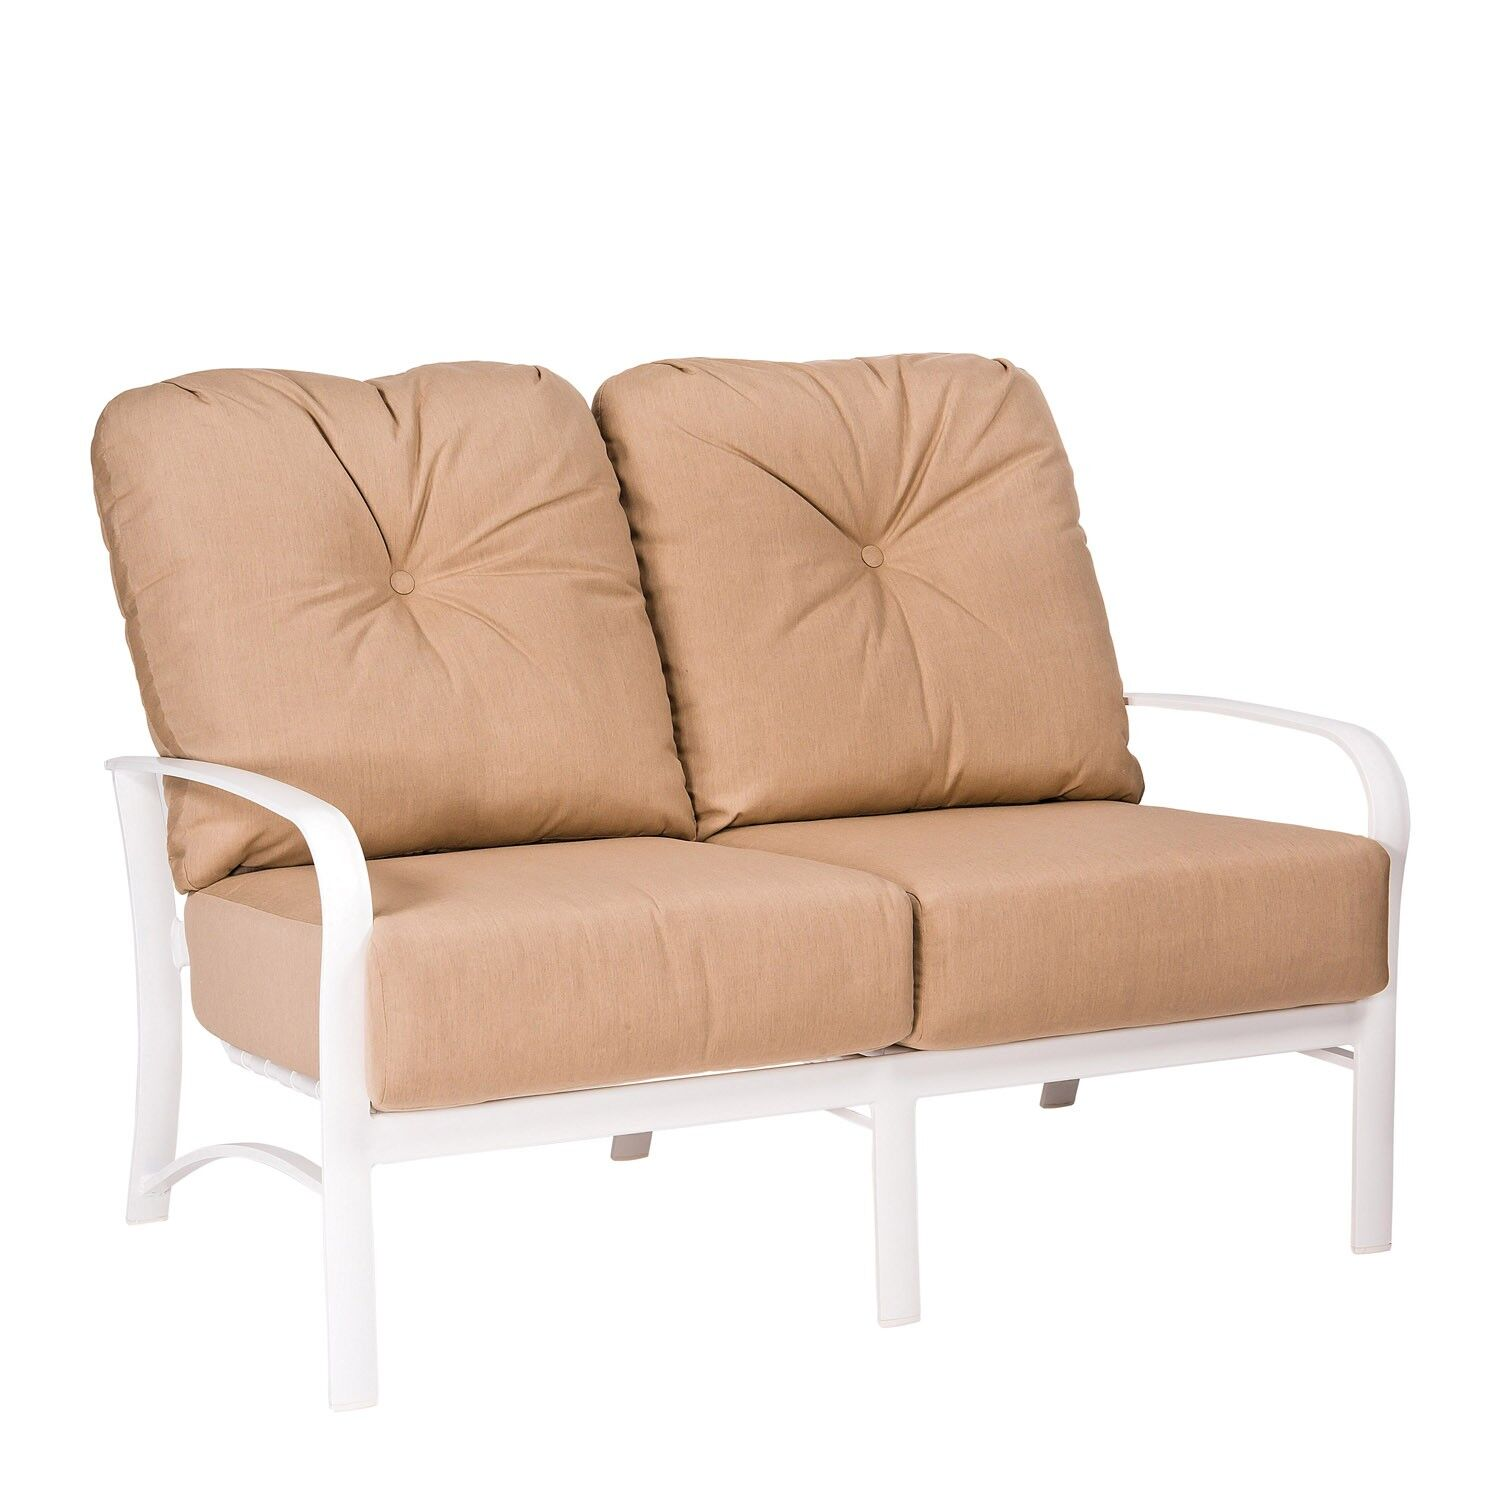 Fremont Loveseat with Cushions